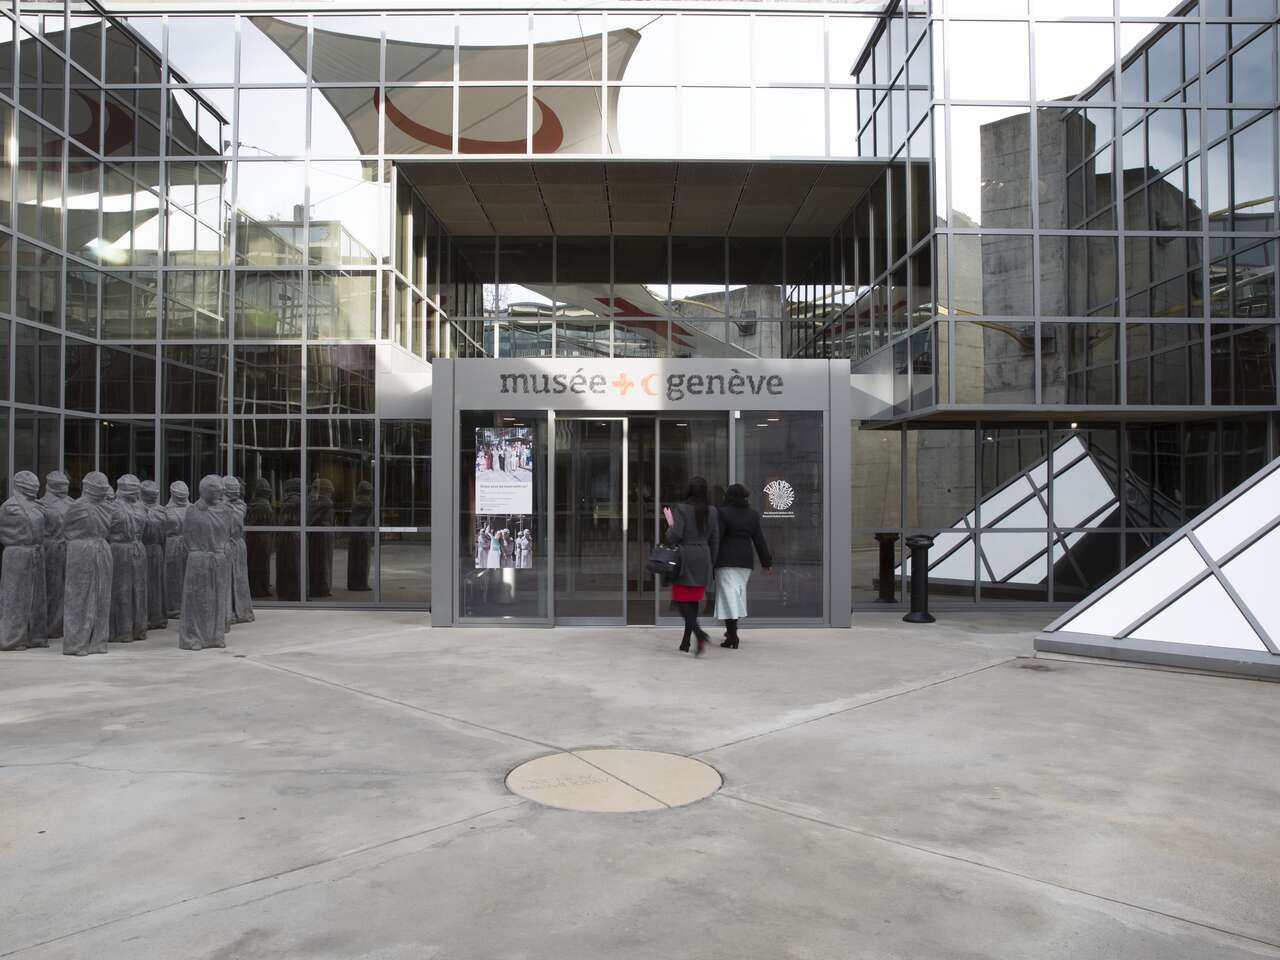 Entrance to the Museum of the International Red Cross